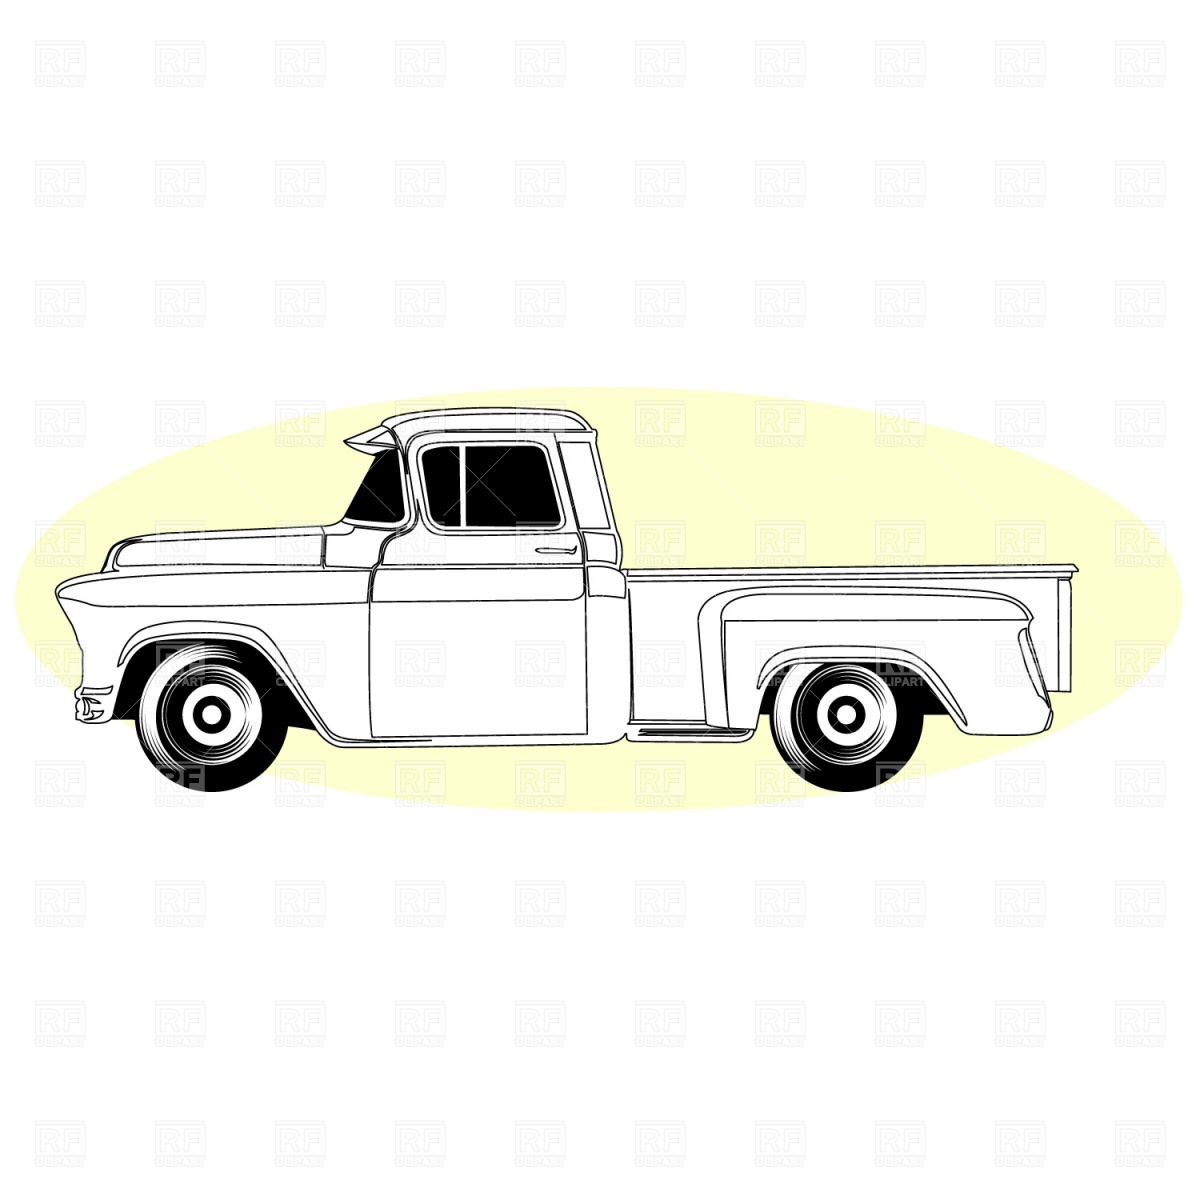 11 Chevy Truck Vector Images